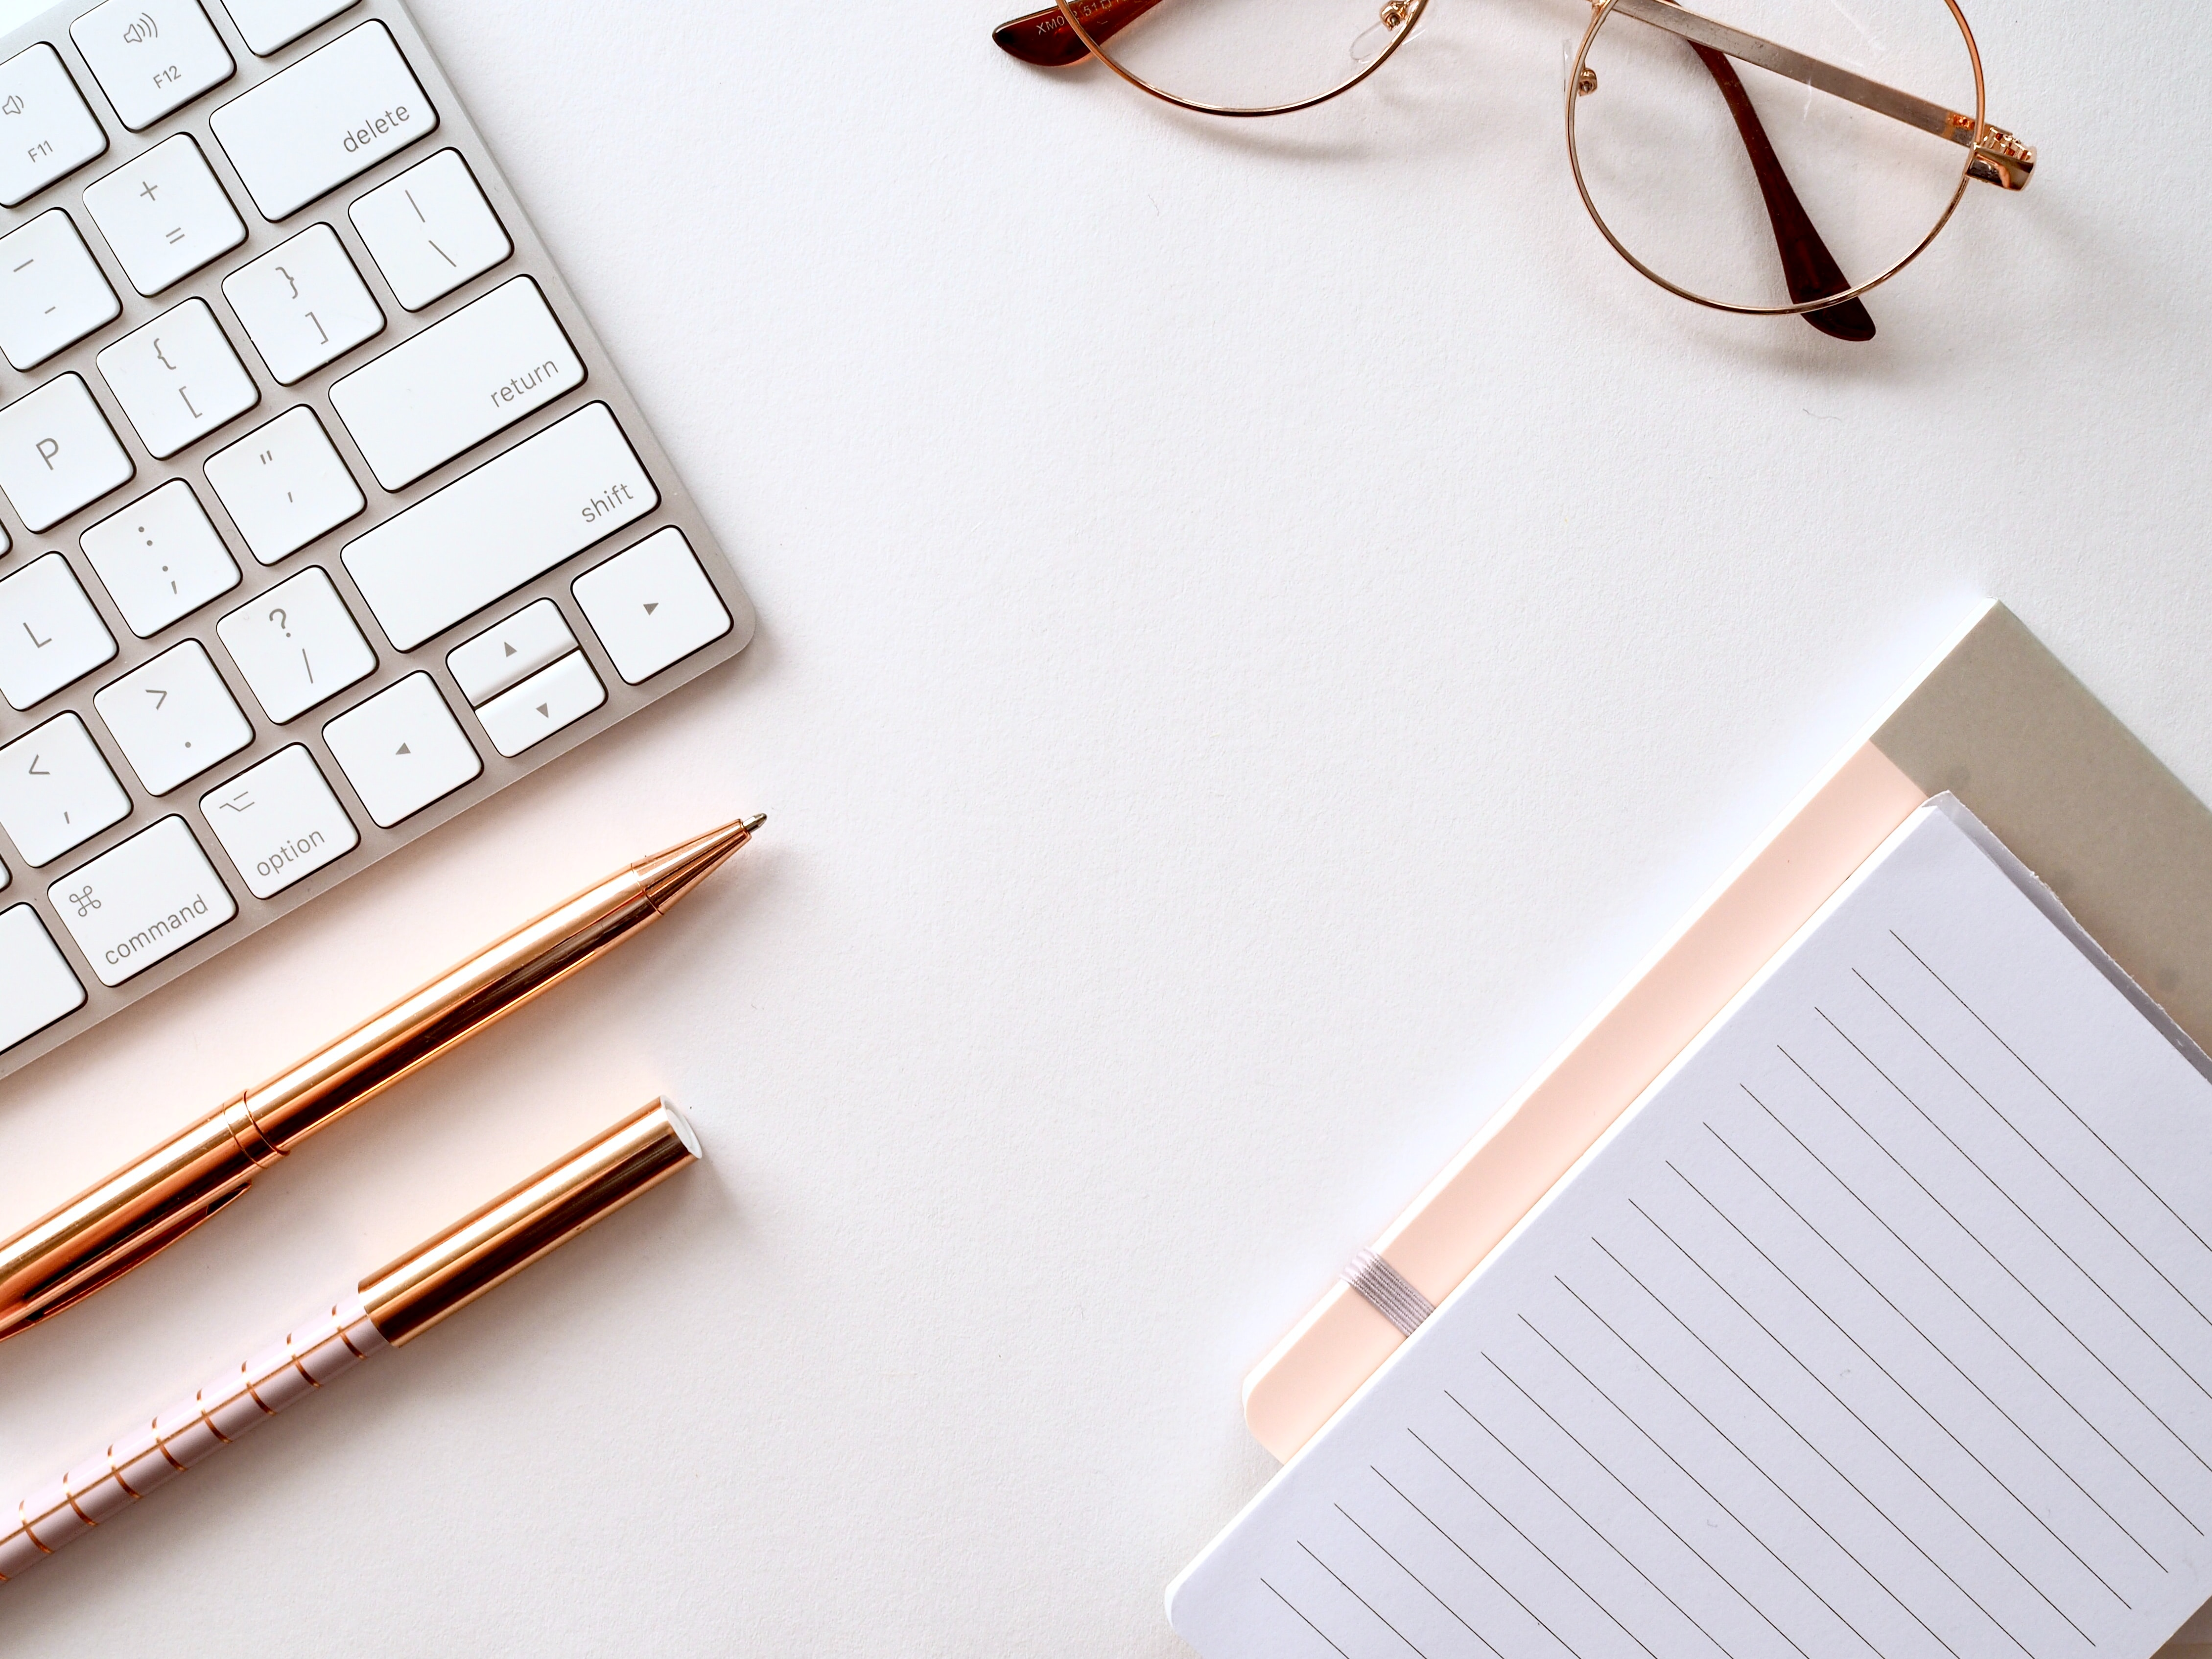 Why Should Your Law Firm Have a Blog?